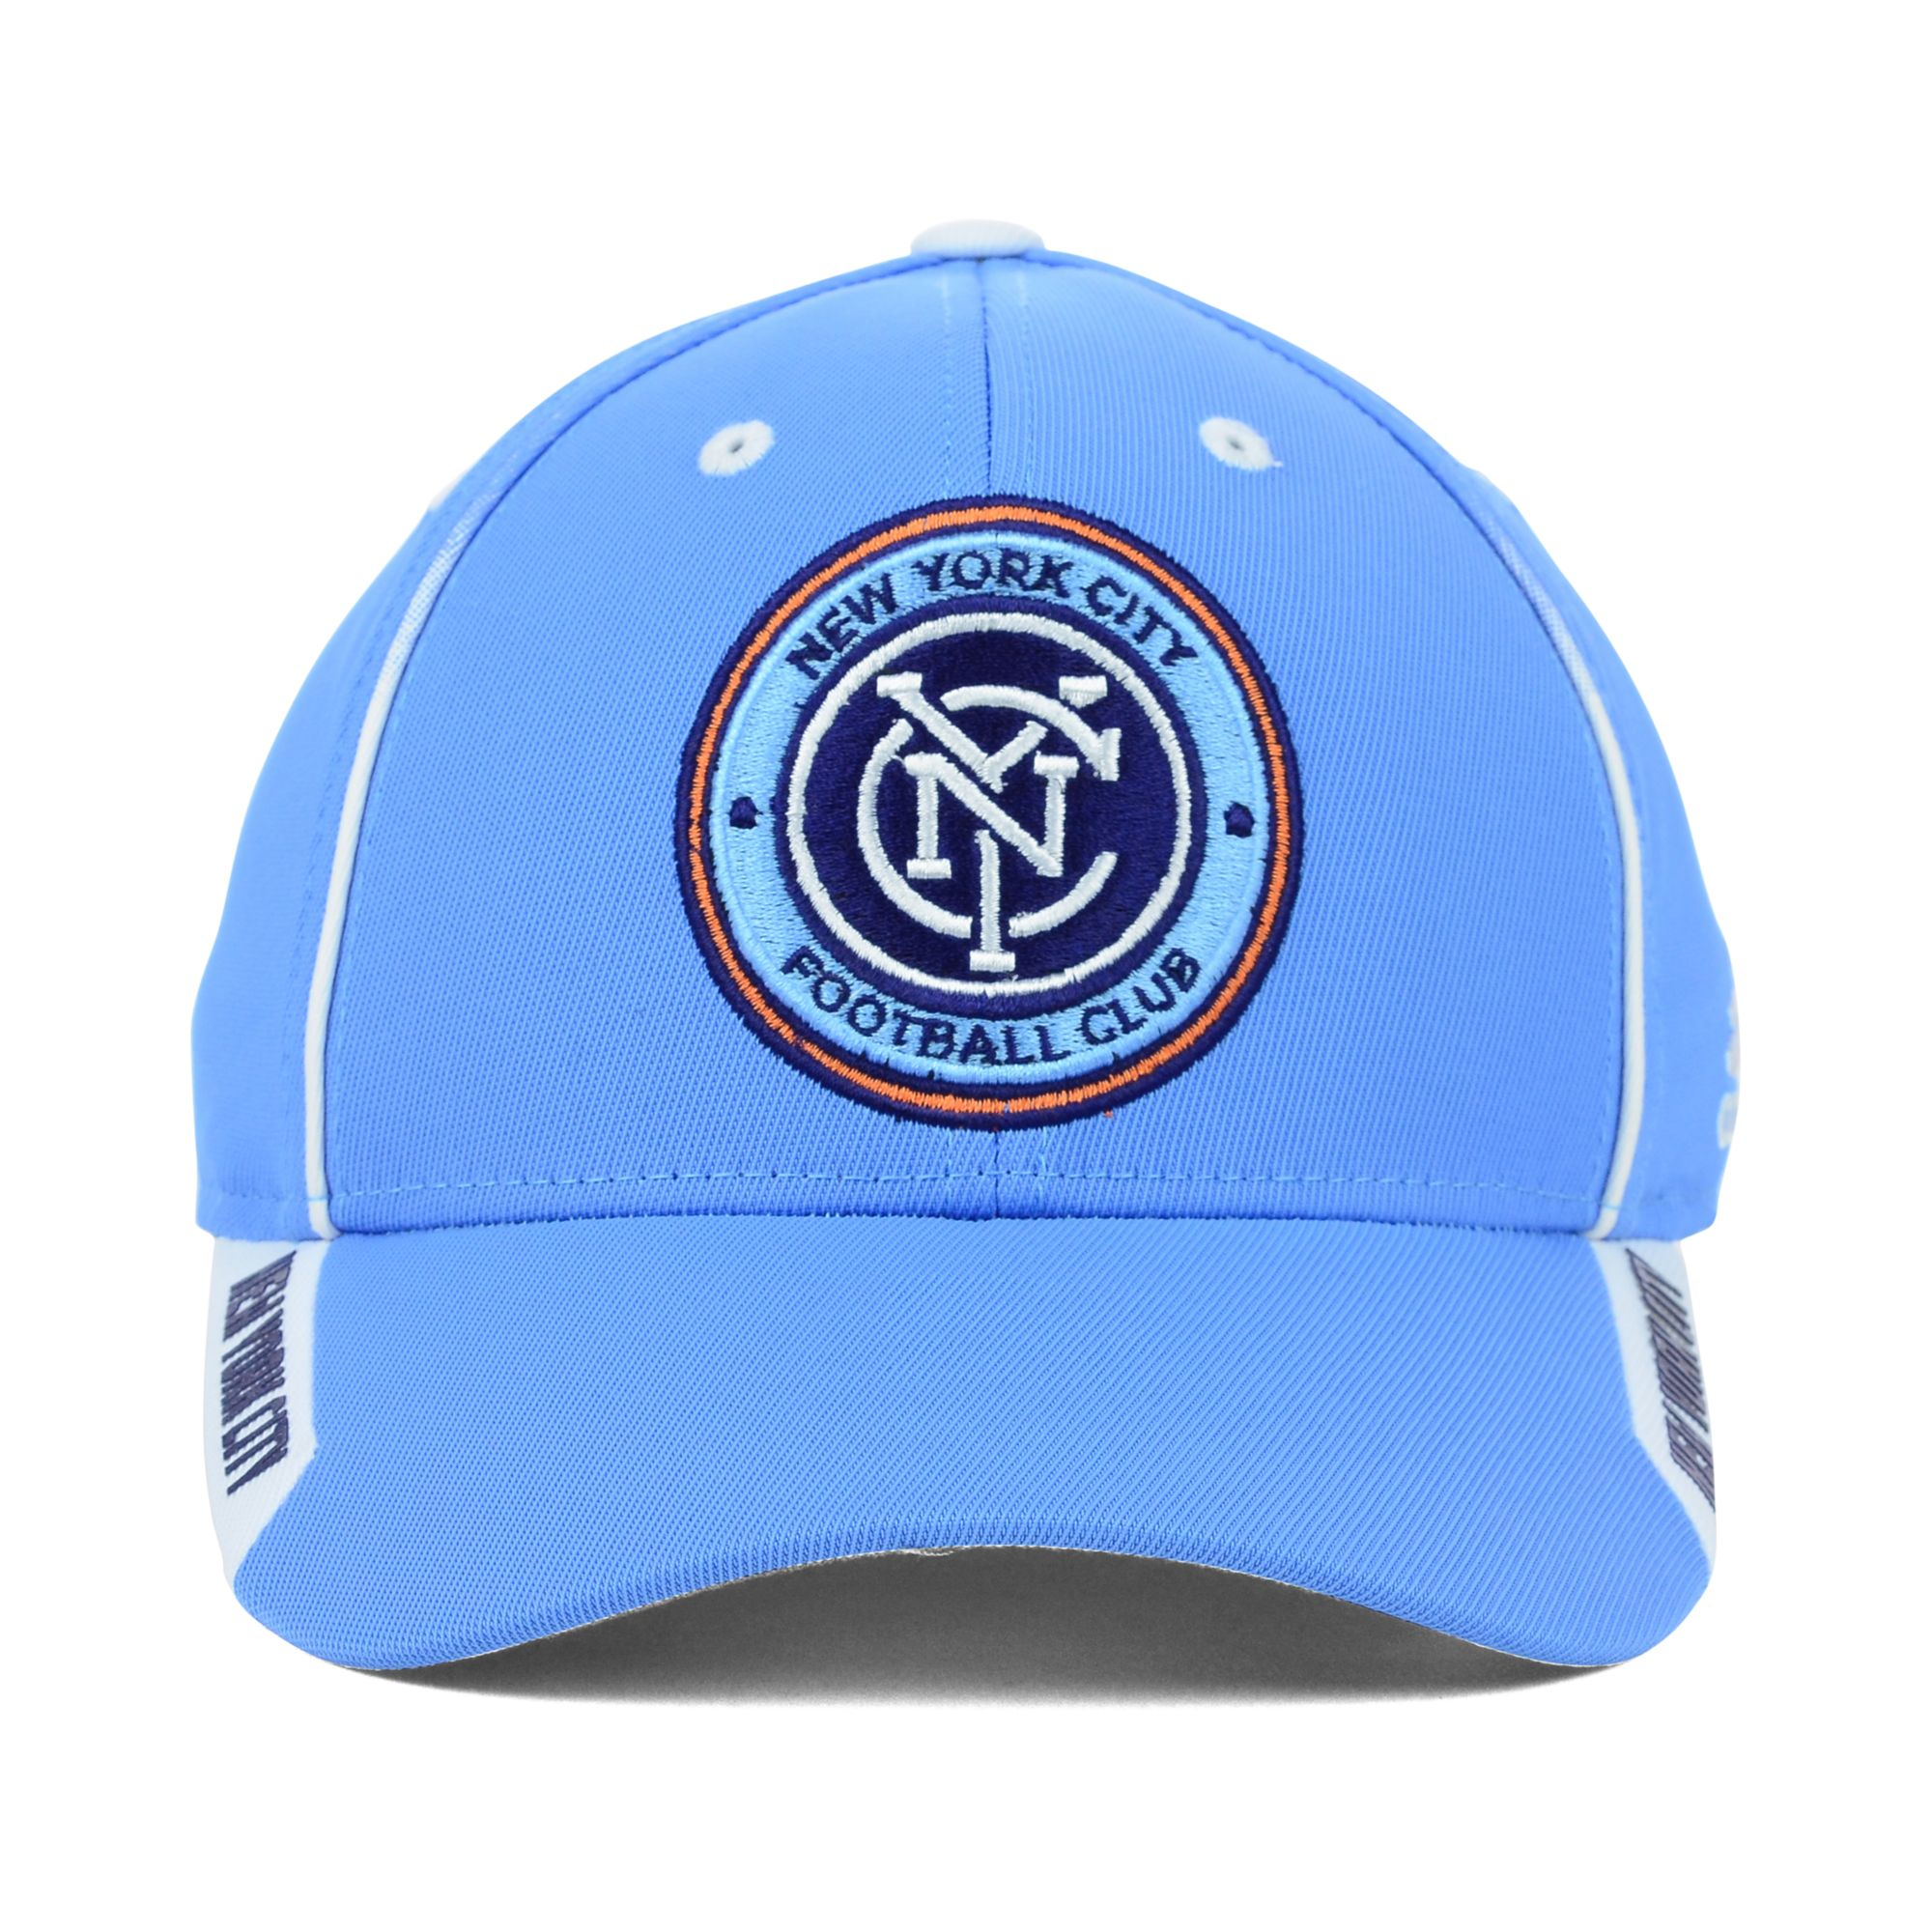 competitive price f6398 006e0 ... where to buy lyst adidas new york city fc mls mid fielder cap in blue  for